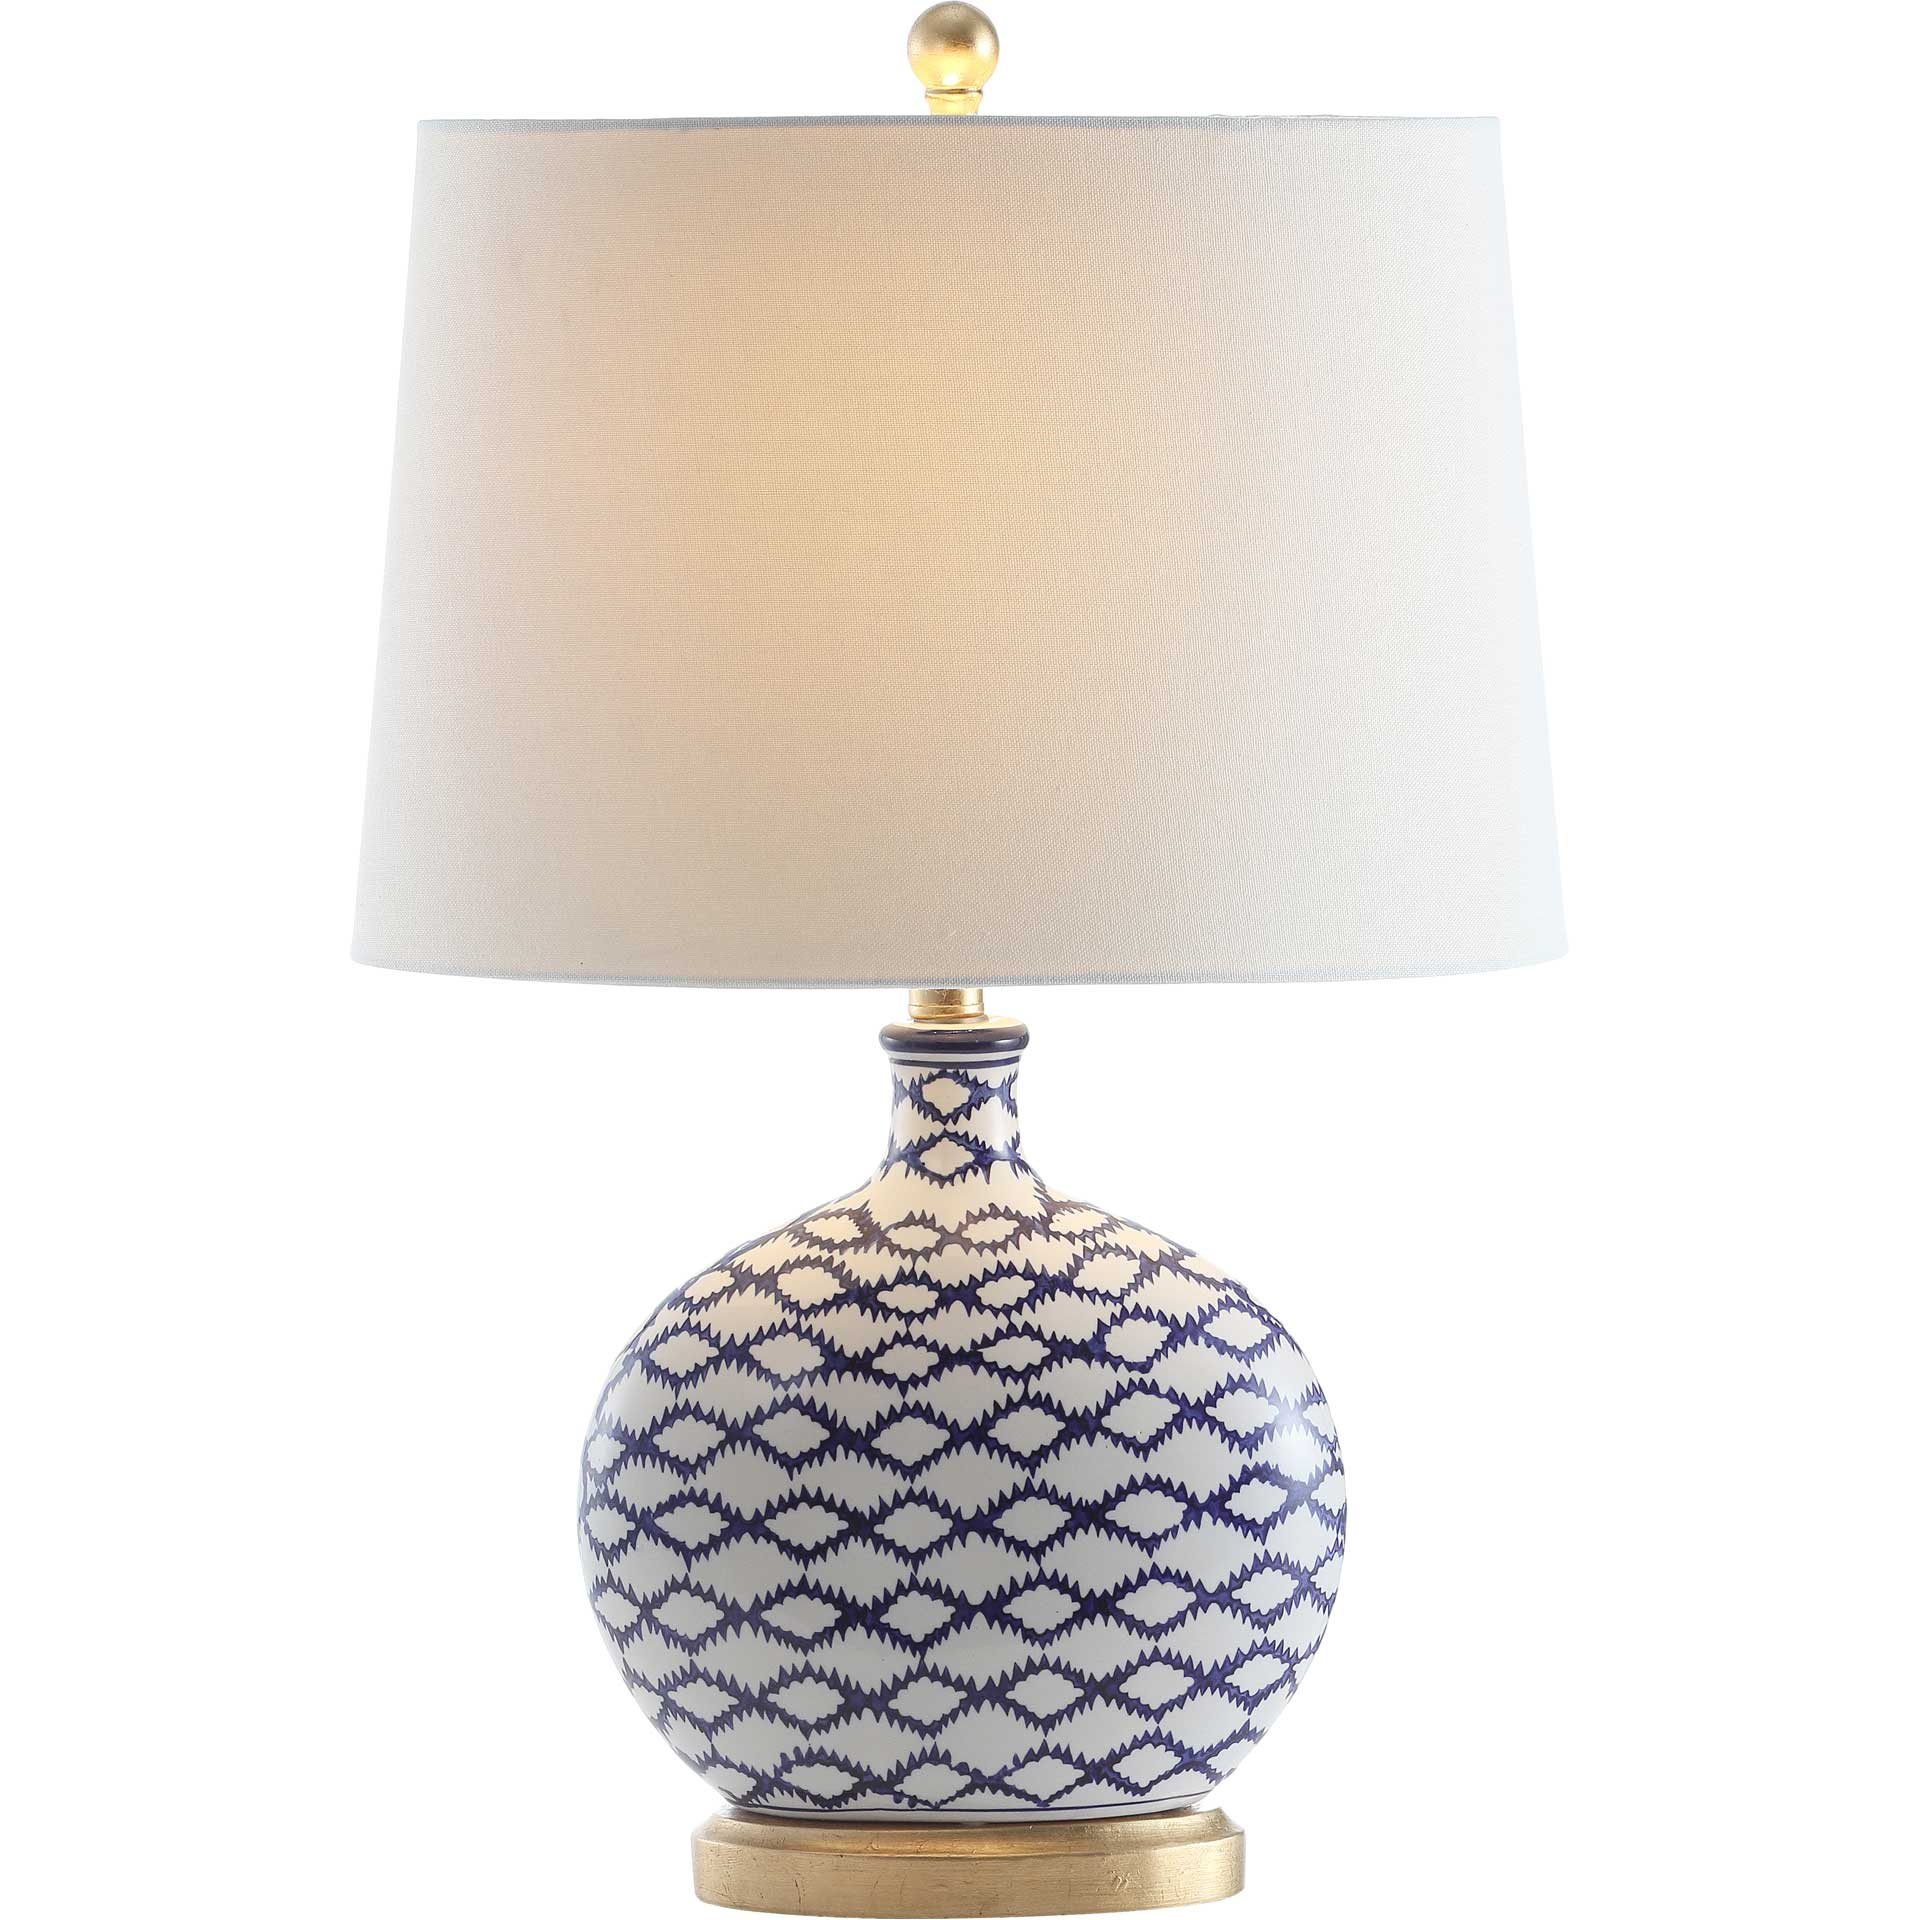 Madurai Table Lamp Blue/White